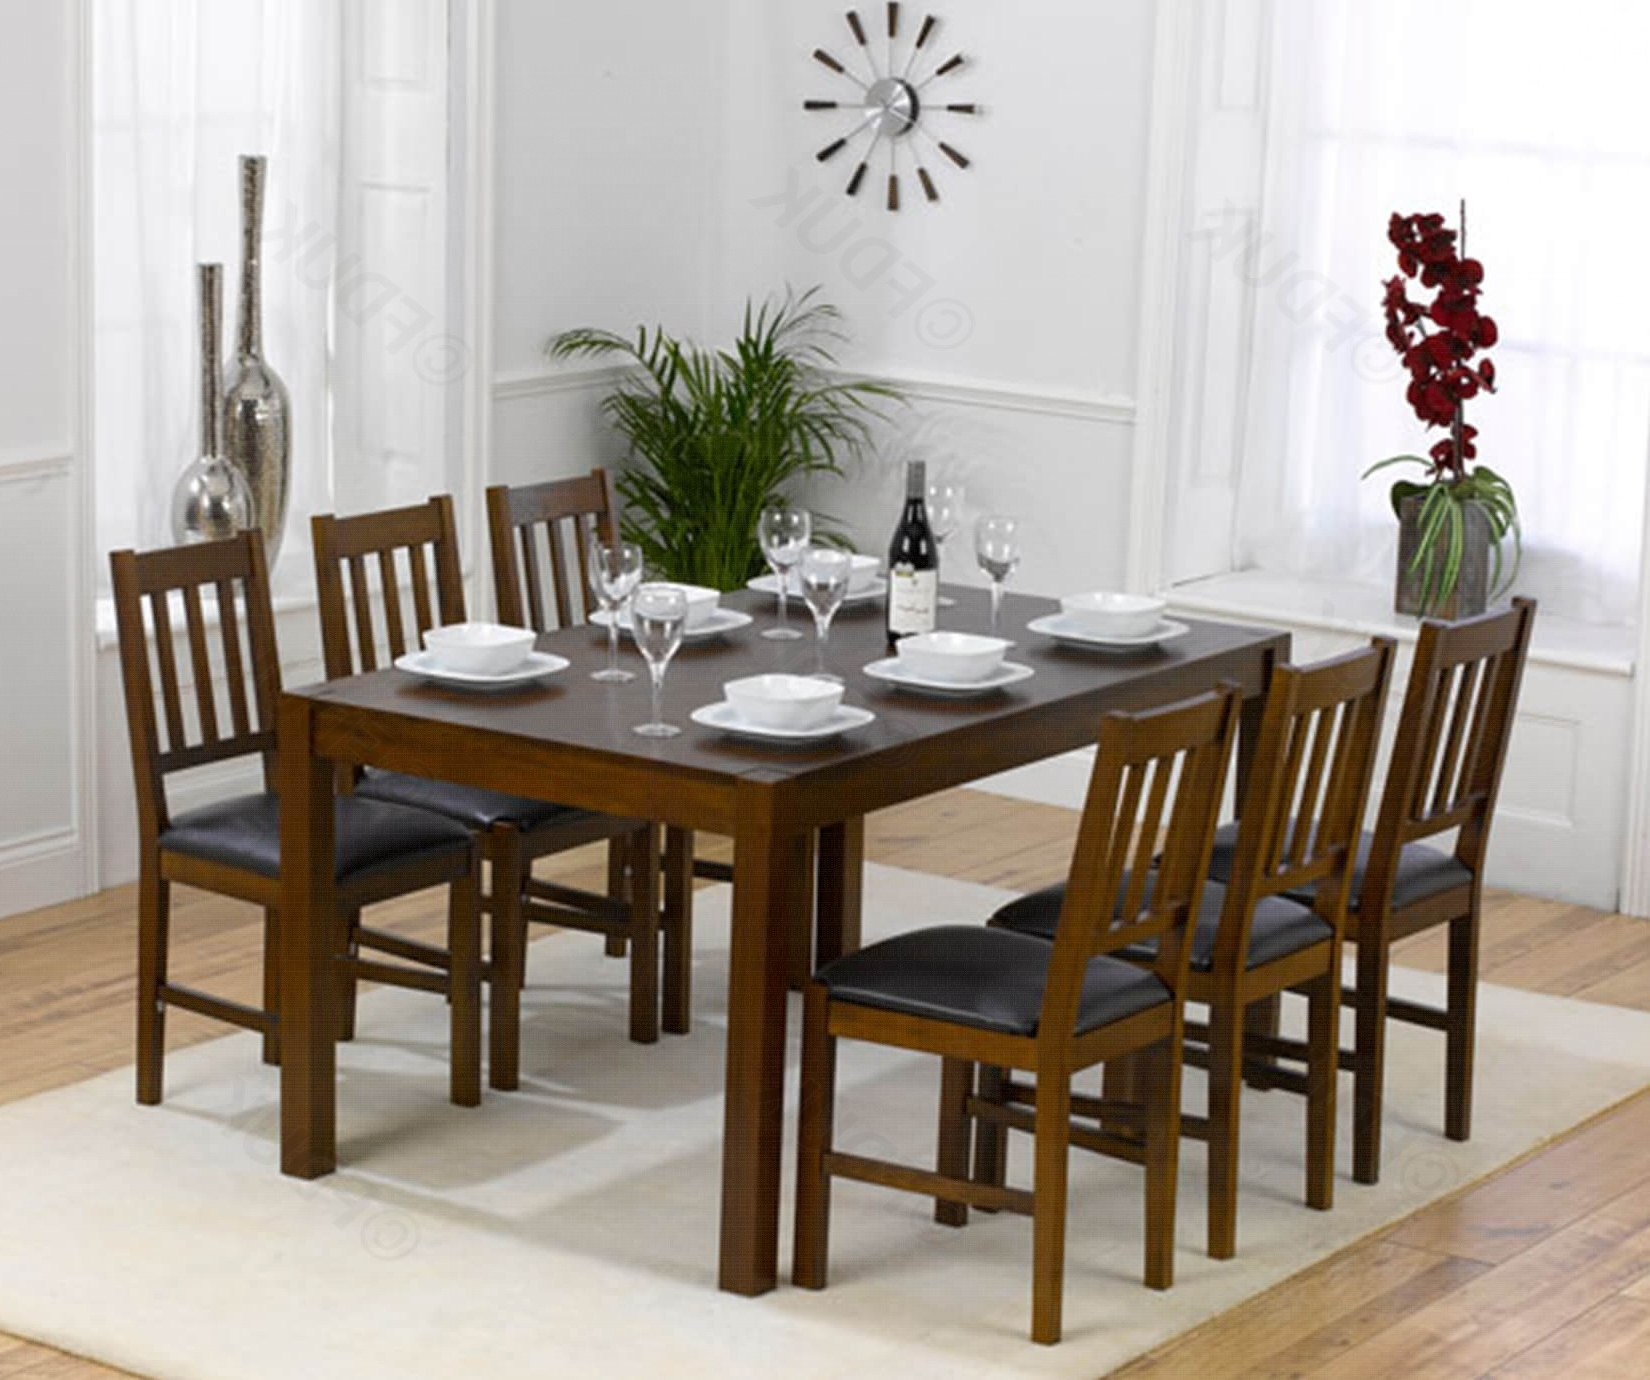 Marbella Solid Dark Oak Dining Table With 6 With Regard To Dark Wood Dining Tables 6 Chairs (Gallery 19 of 25)